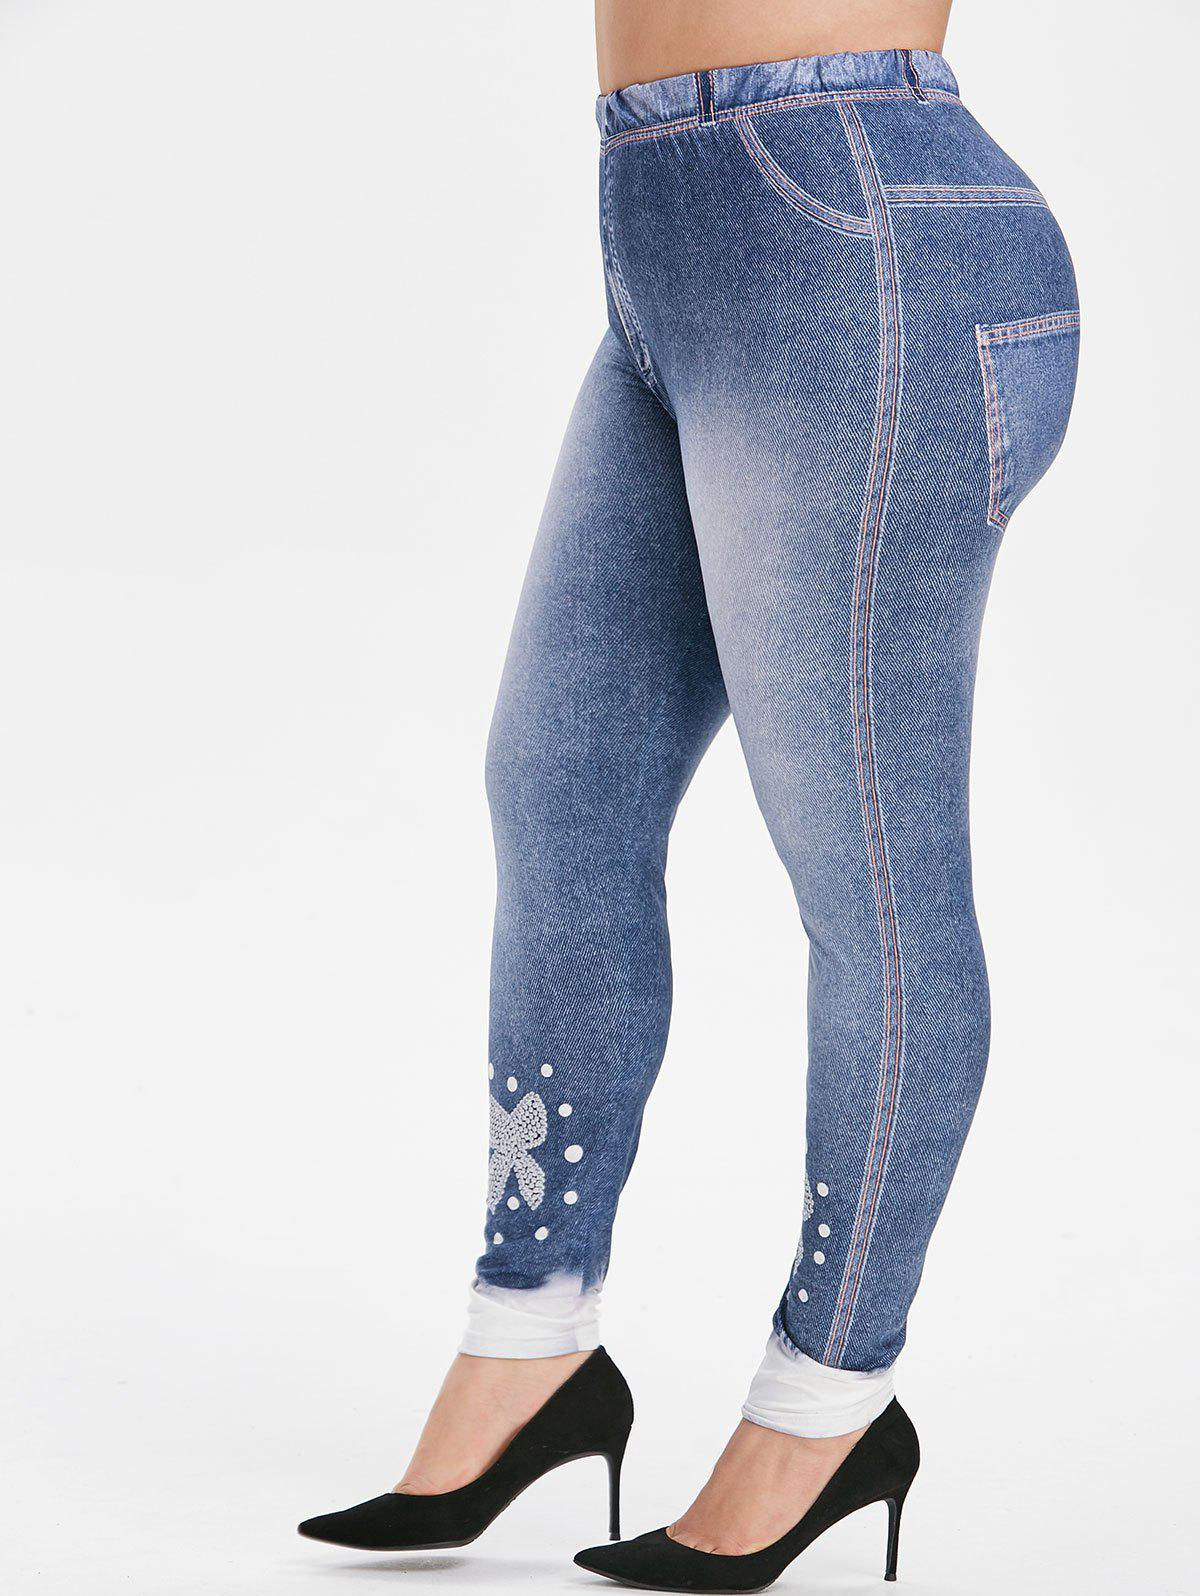 Taille Plus bowknot Imprimer taille haute Skinny jeggings